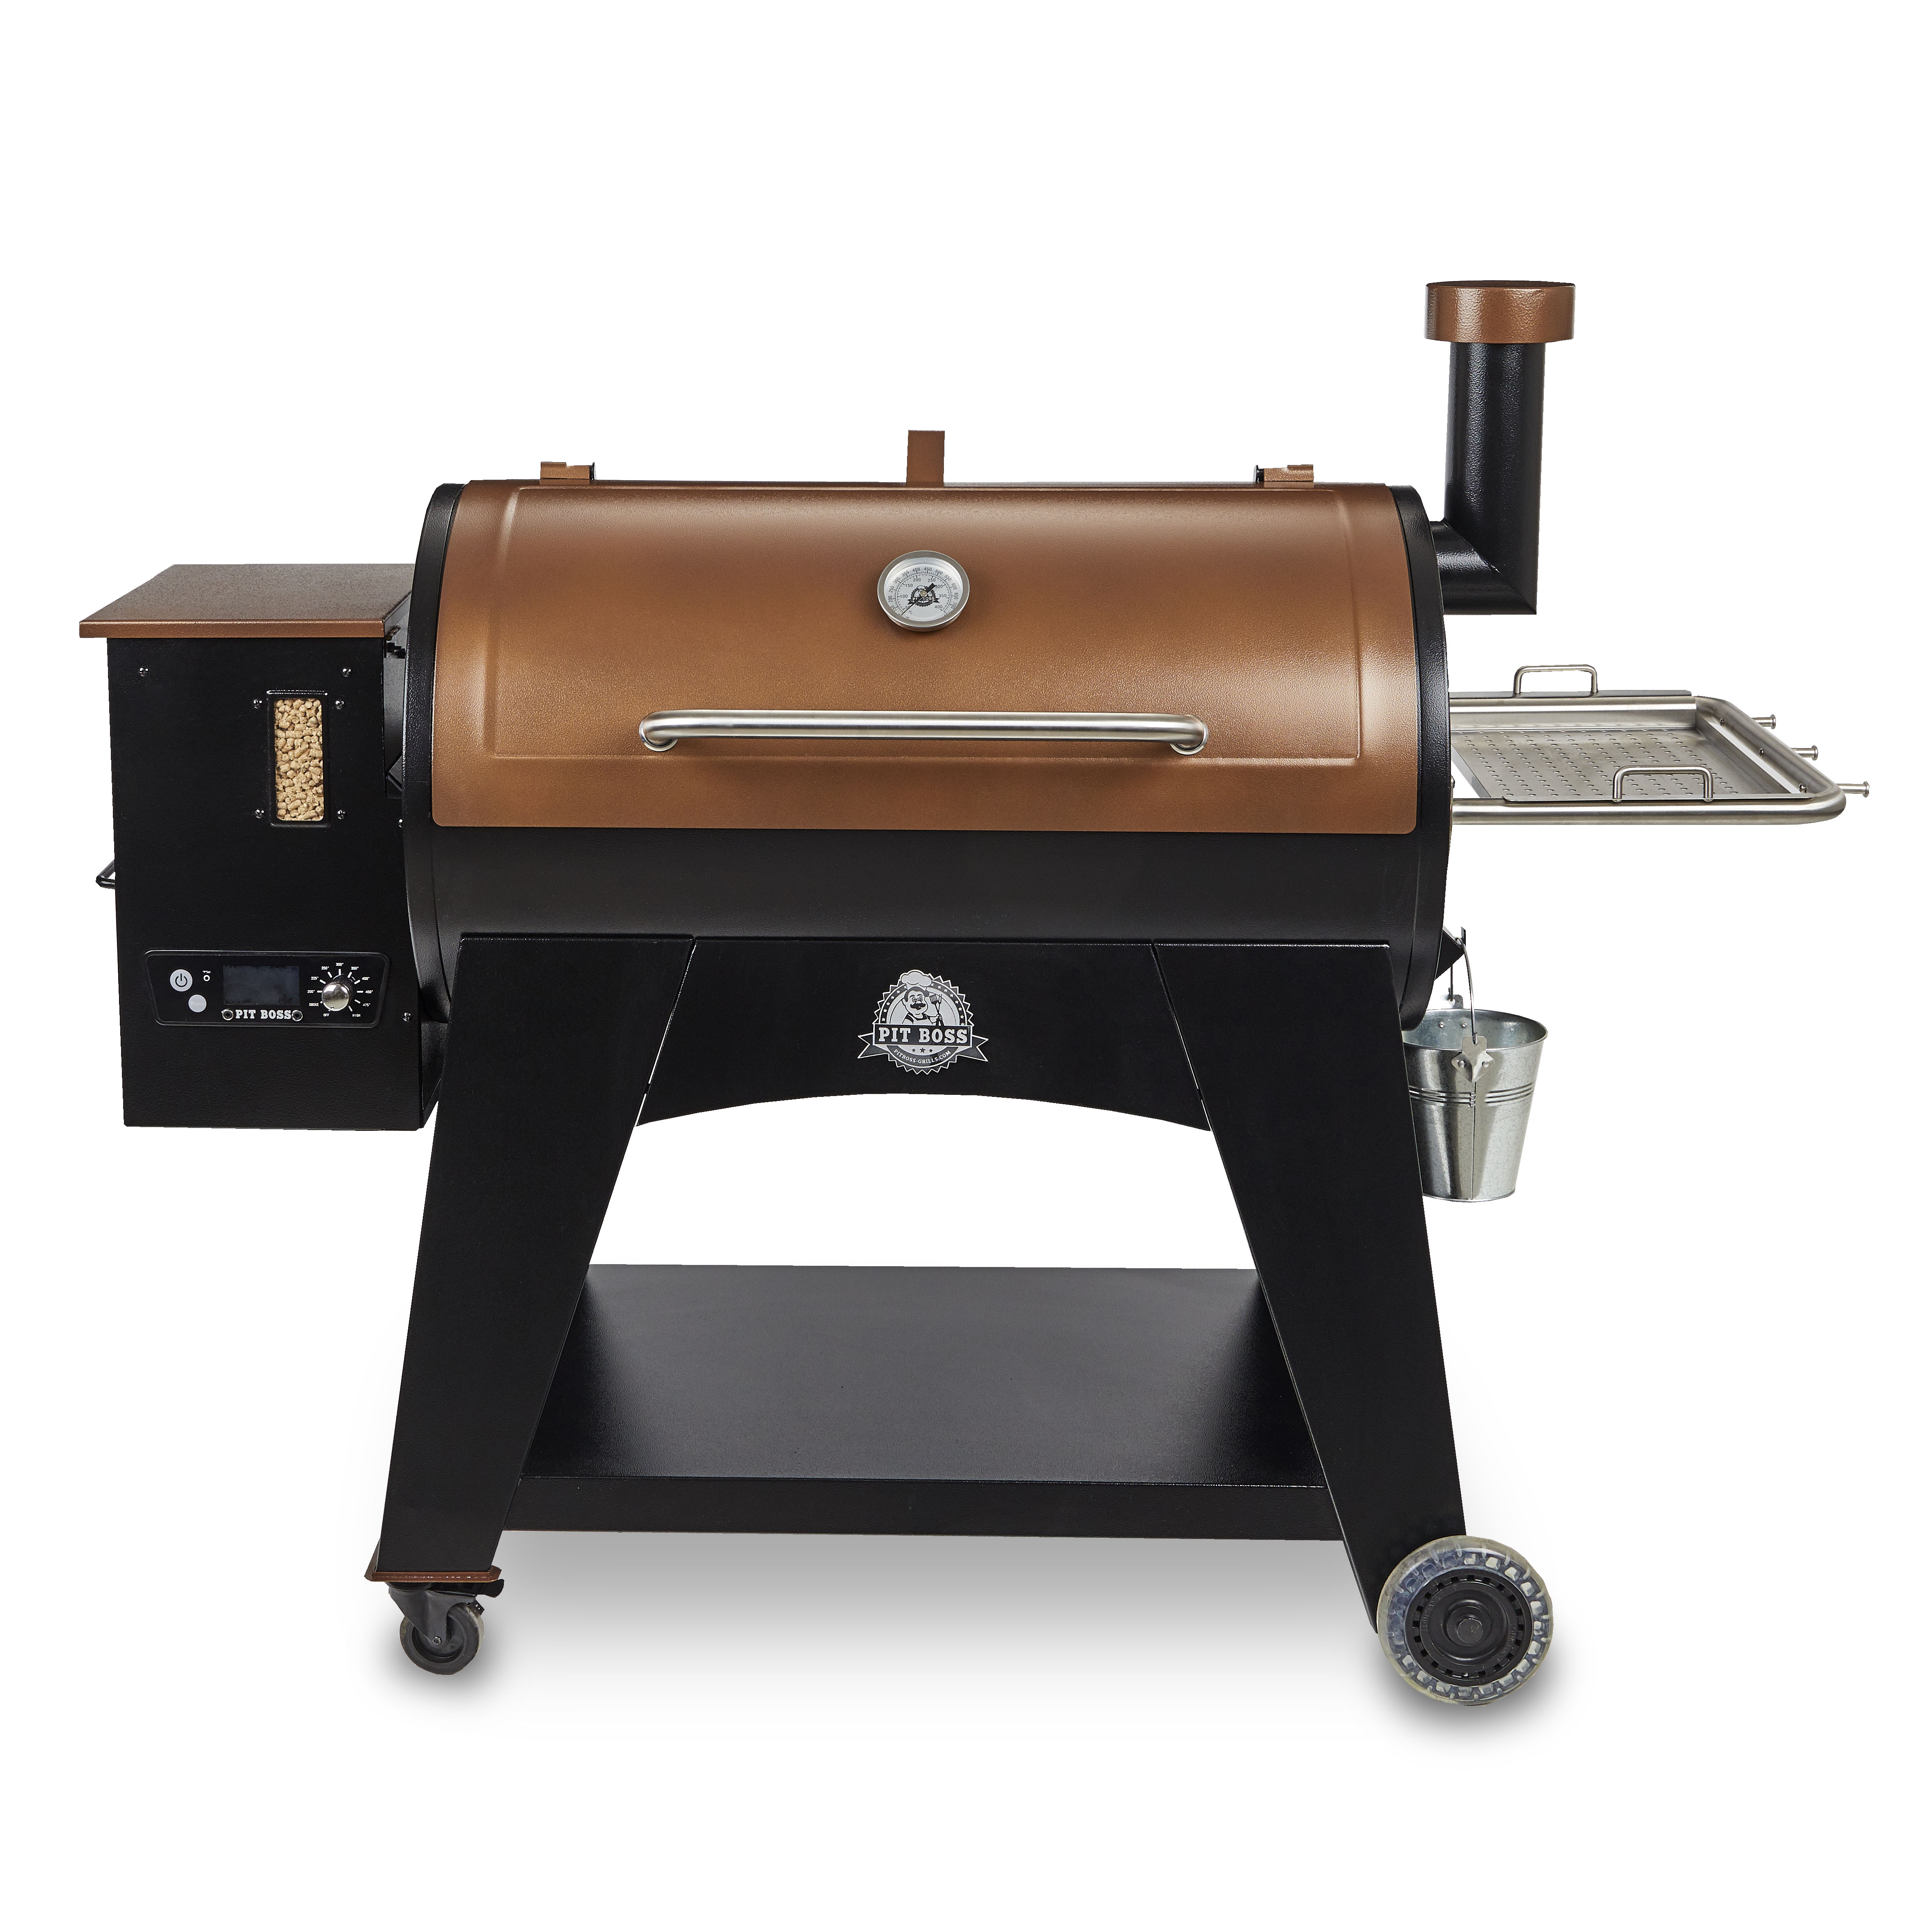 Pit Boss Austin XL 1000 sq. in. Pellet Grill w/ Flame Broiler & Cooking